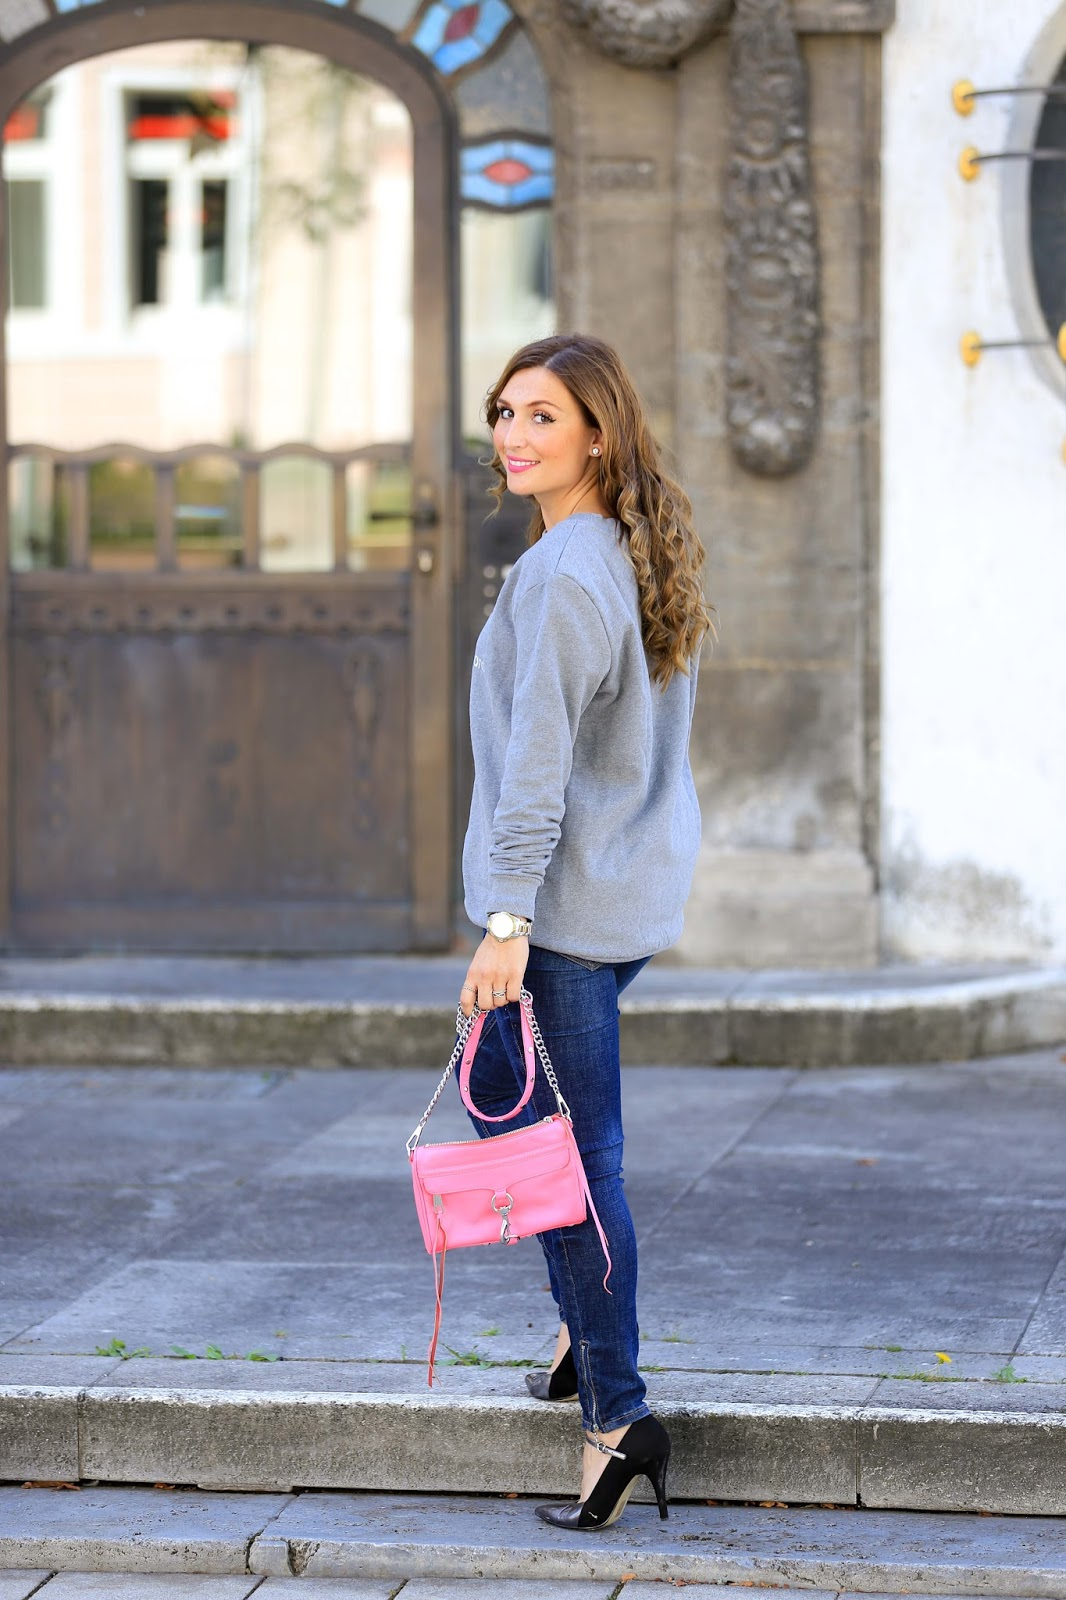 About You-You and your Idol-Blogger-About You Blogger -Blogwalk-CK Pullover-grauer Pullover-pinke Tasche-Stella Mc Cartney Tasche-silberne Schuhe-Casual Streetstyle-Fashionstylebyjohanna-Blogger-